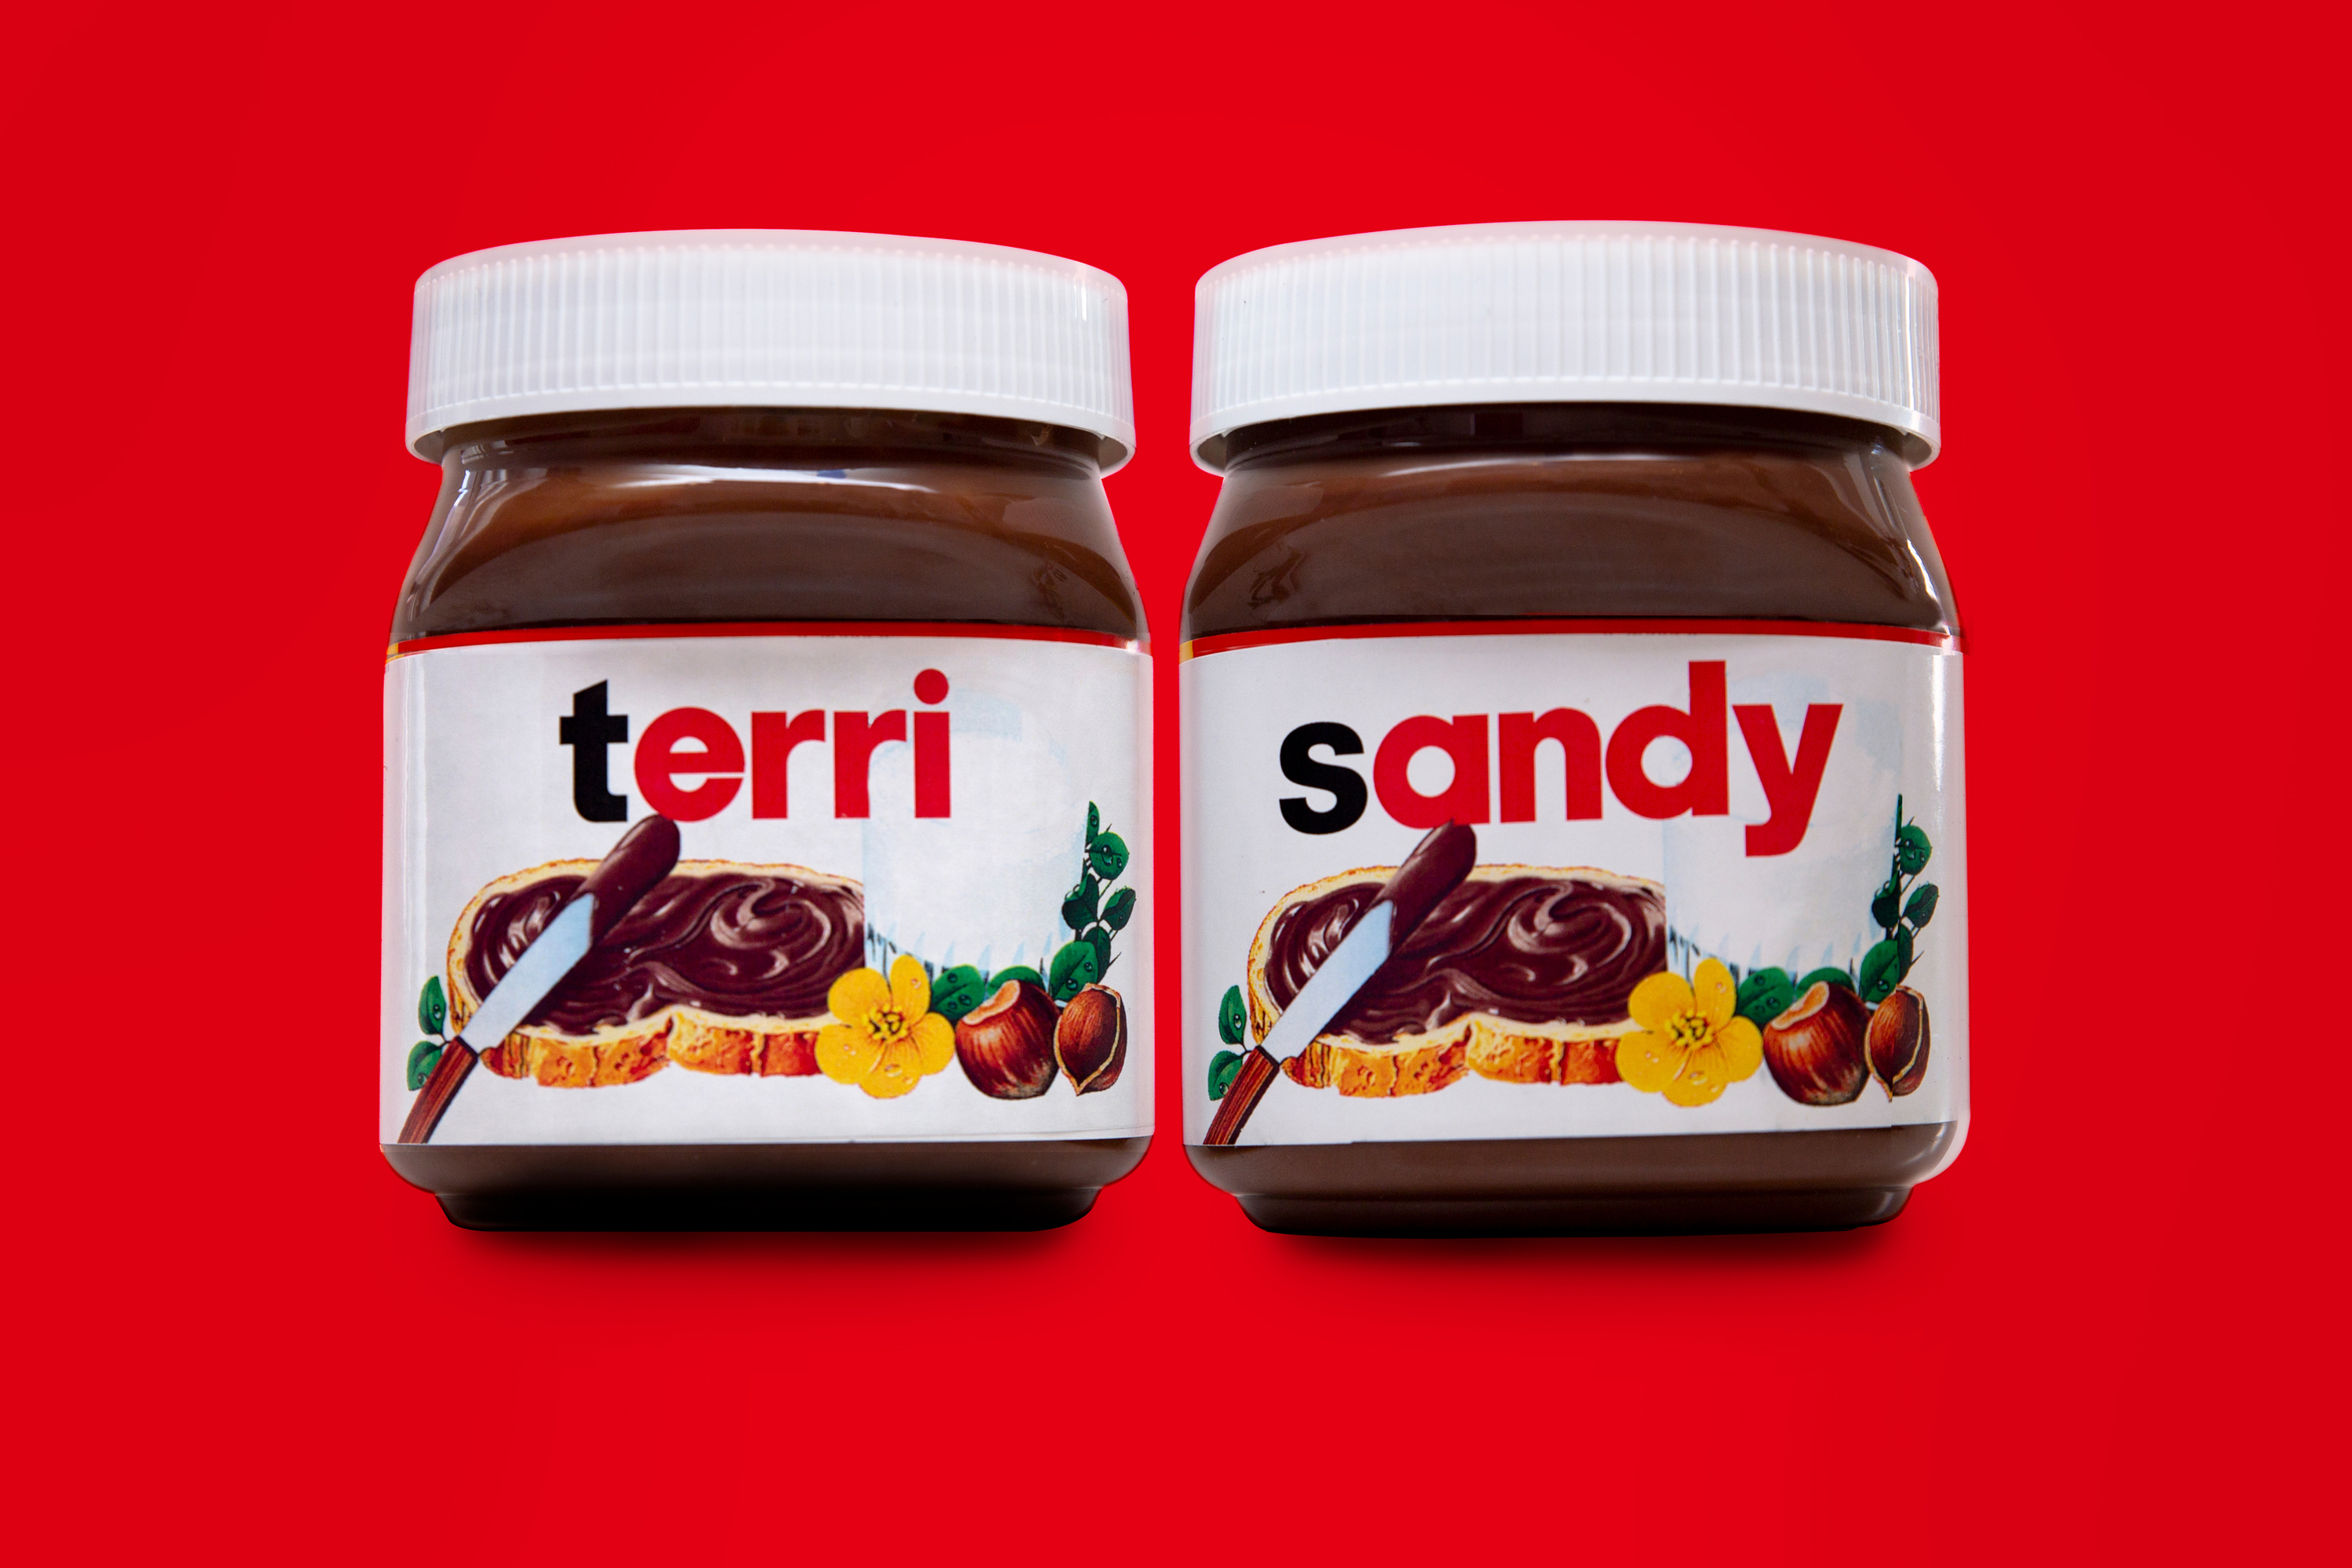 Terri & Sandy wins Nutella U.S. creative business